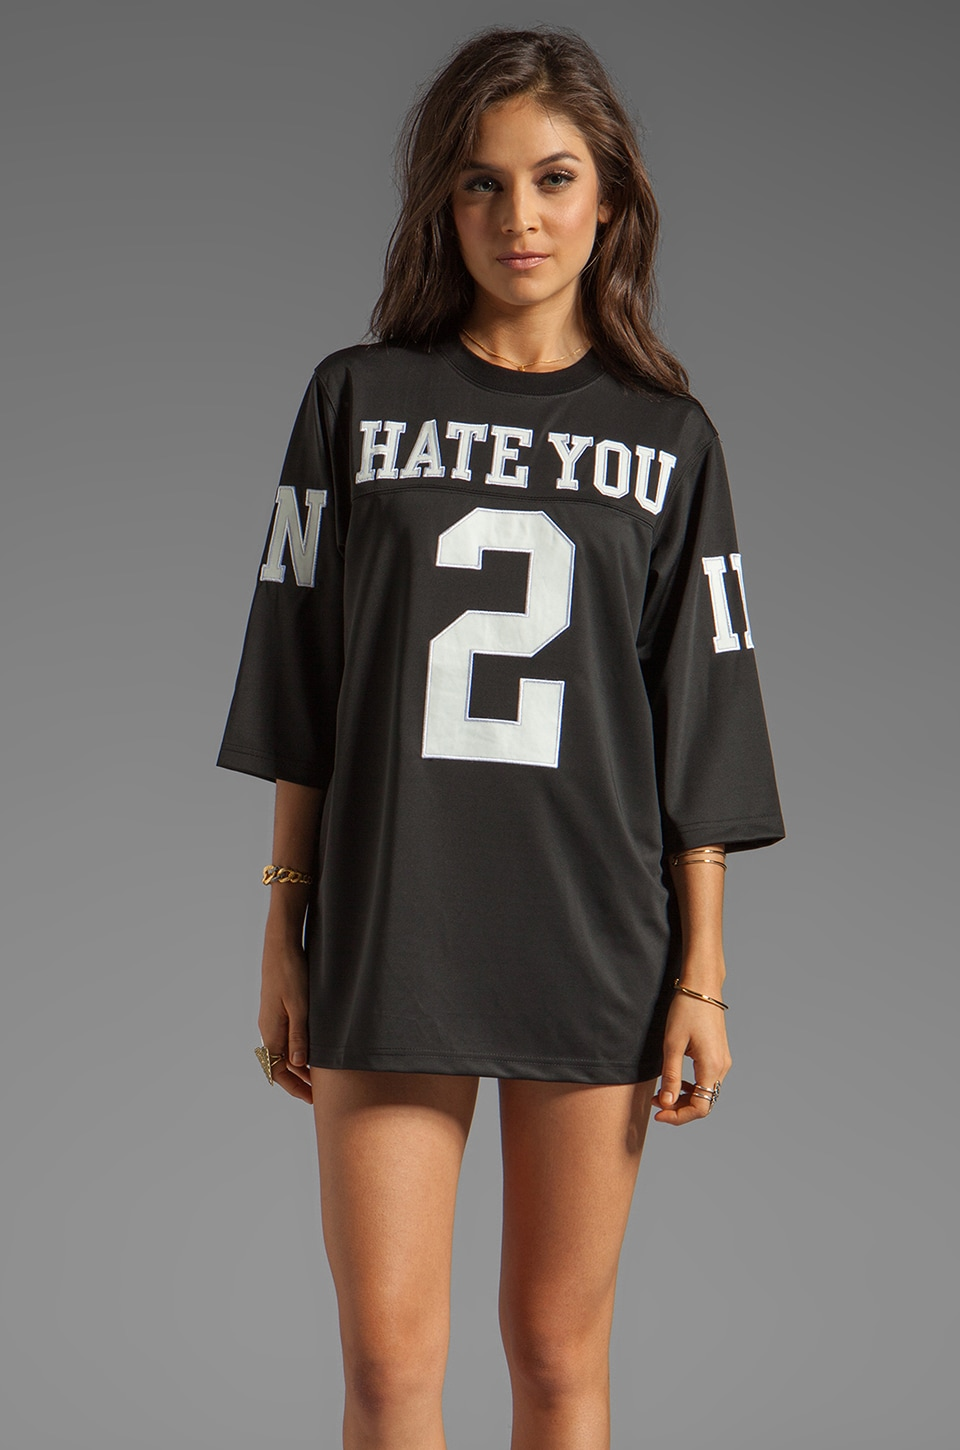 UNIF Hate Jersey in Black